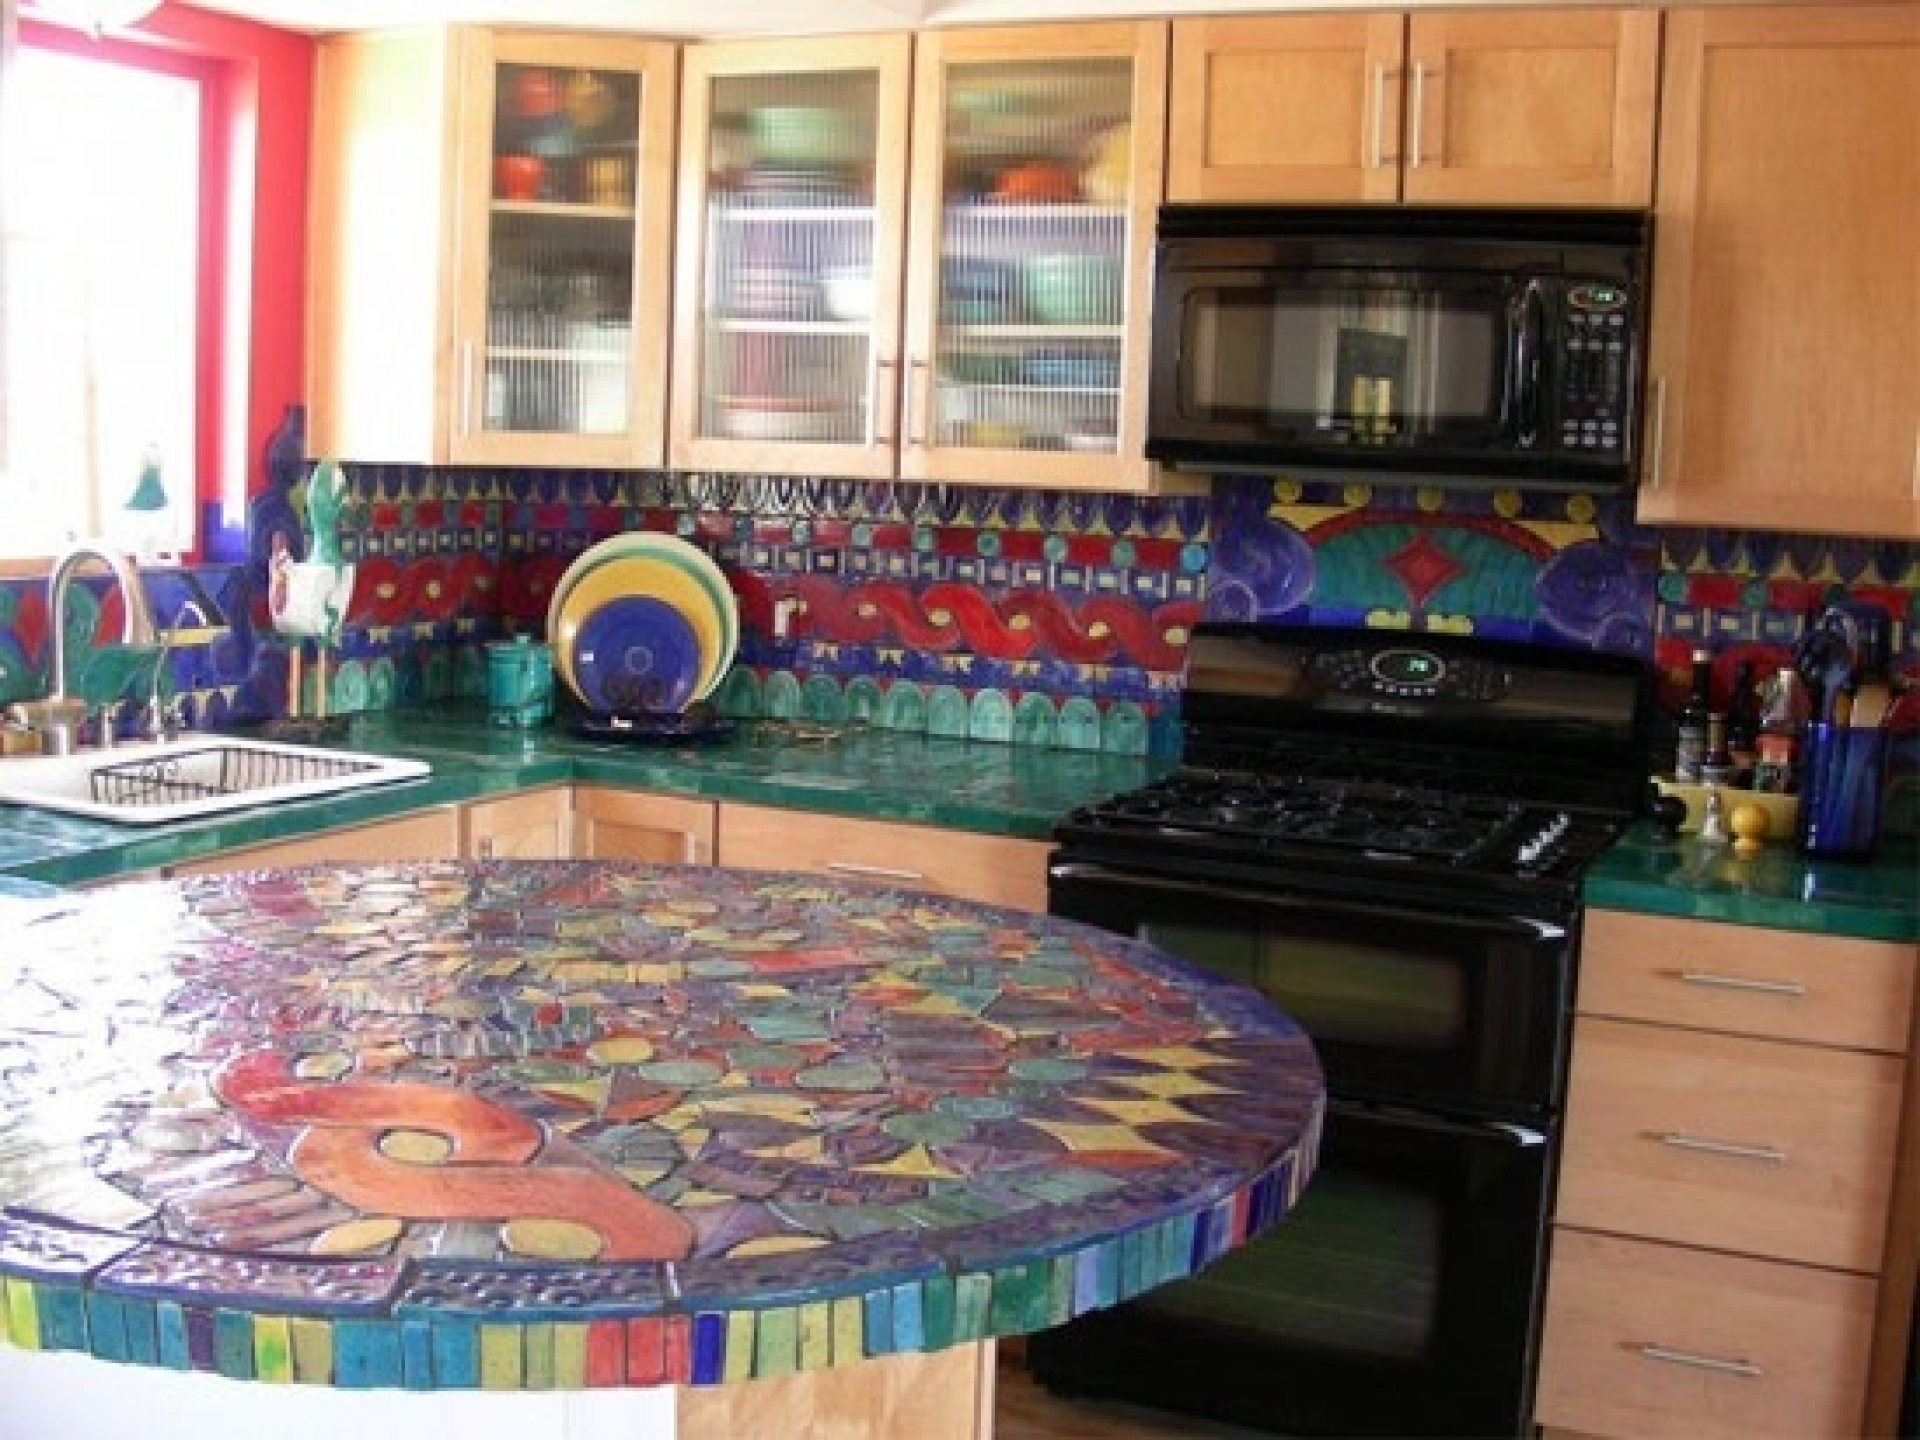 Colourful Tiles on Mosaic Ideas for Kitchen